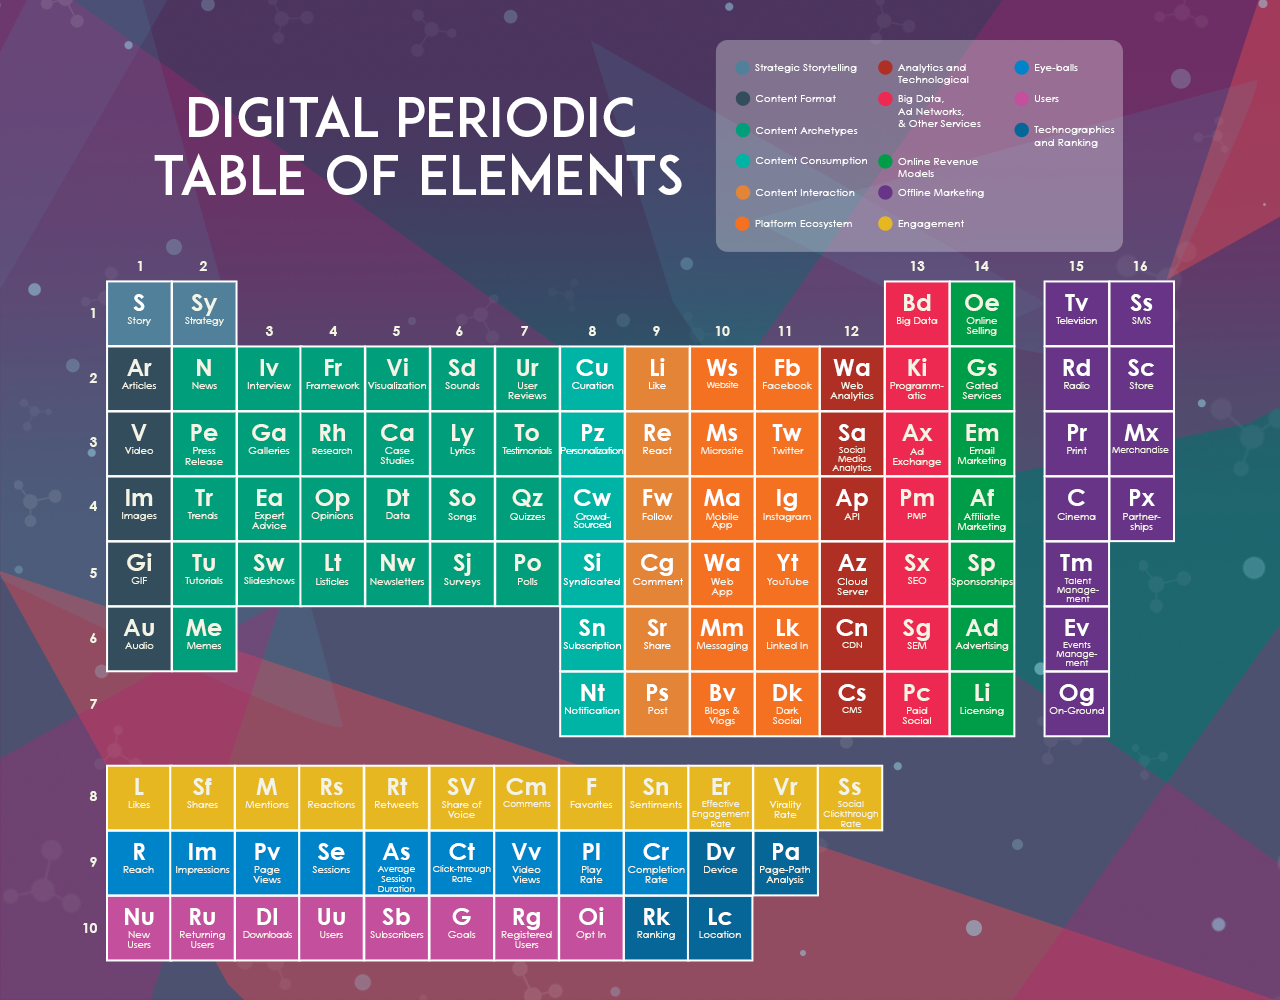 A discussion on the digital periodic table of elements table 1 digital periodic table of elements urtaz Gallery